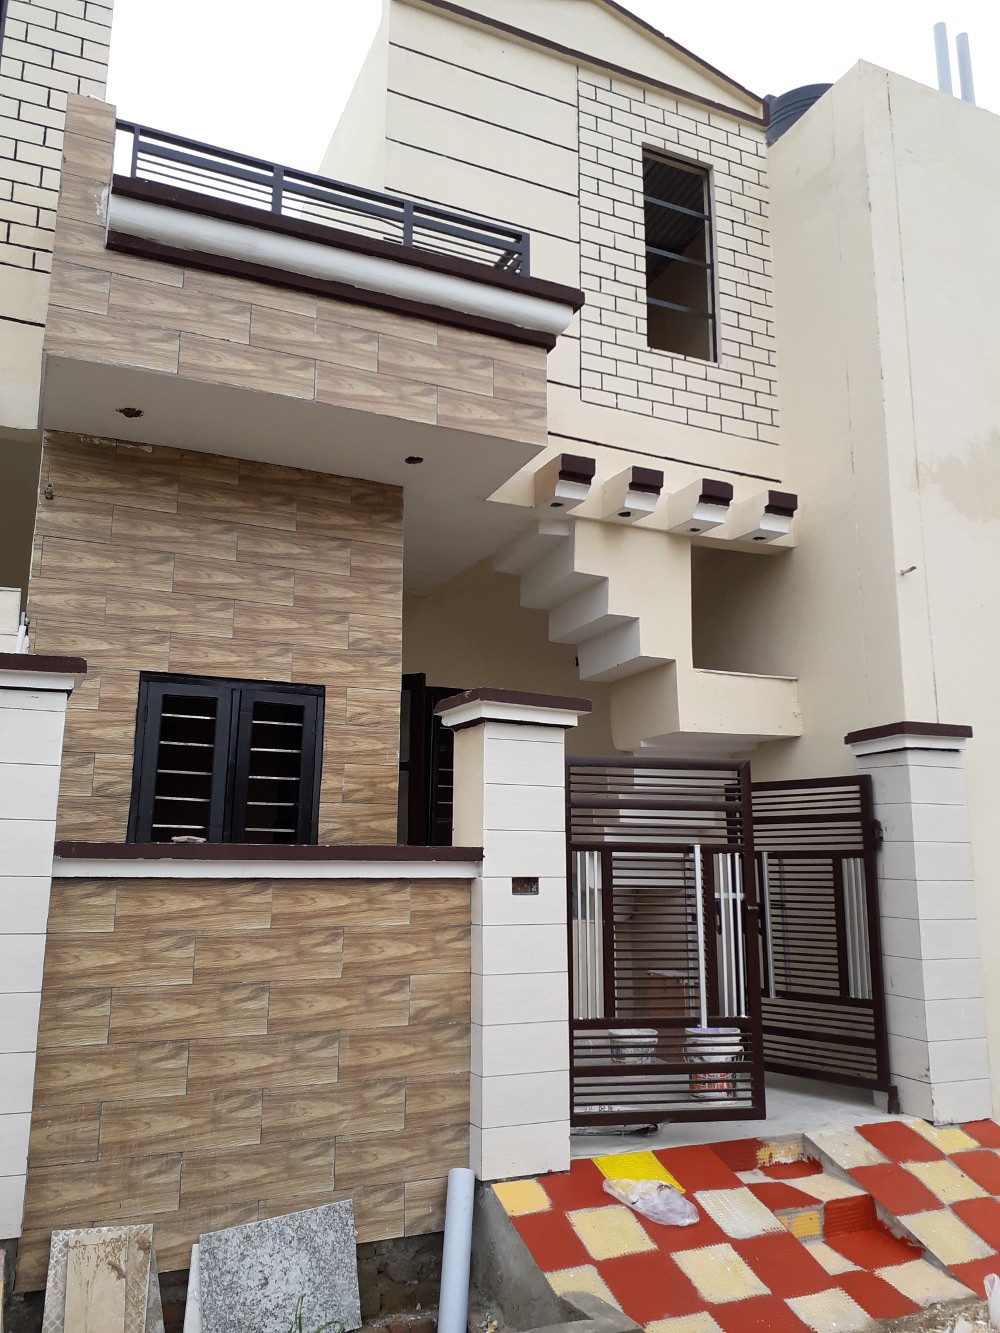 65 Sq Yards Independent House For Sale on Bhabat Road Zirakpur Call-9888777712